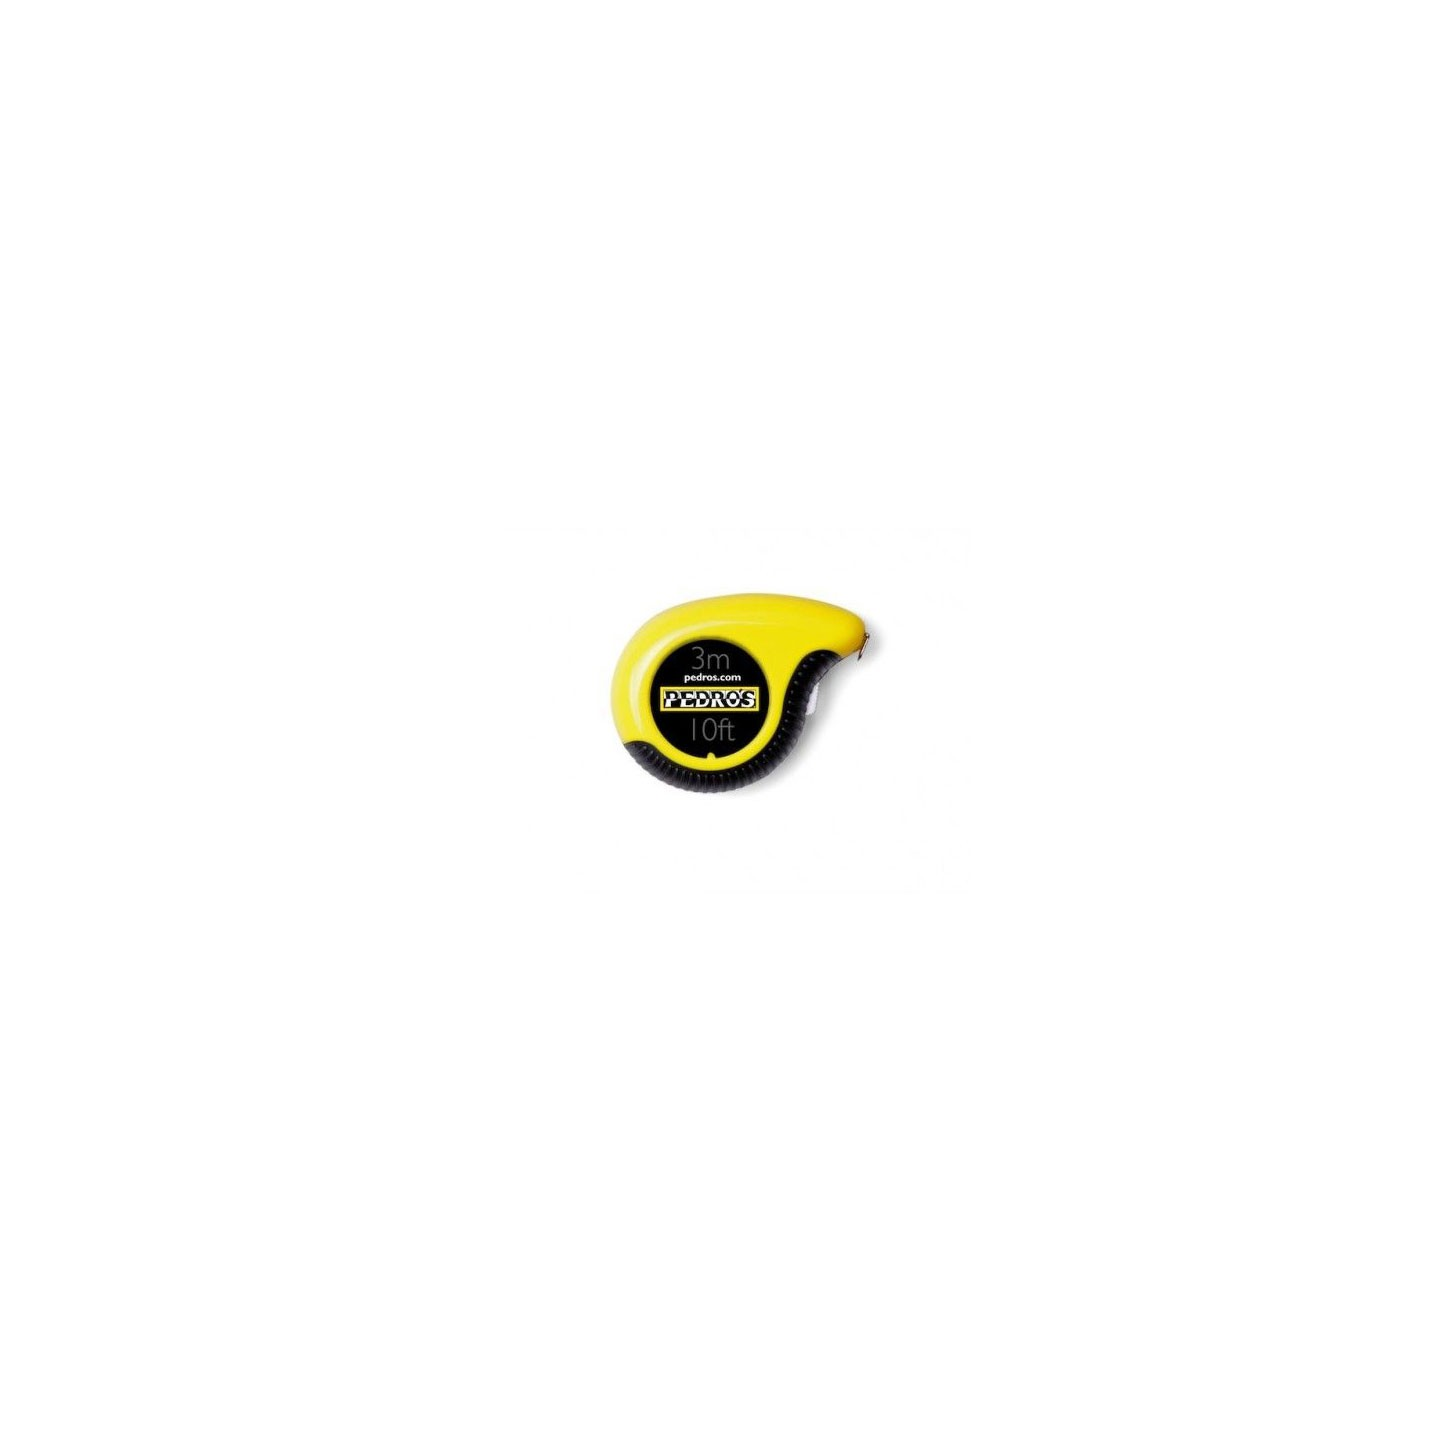 Pedros Tape Measure C40